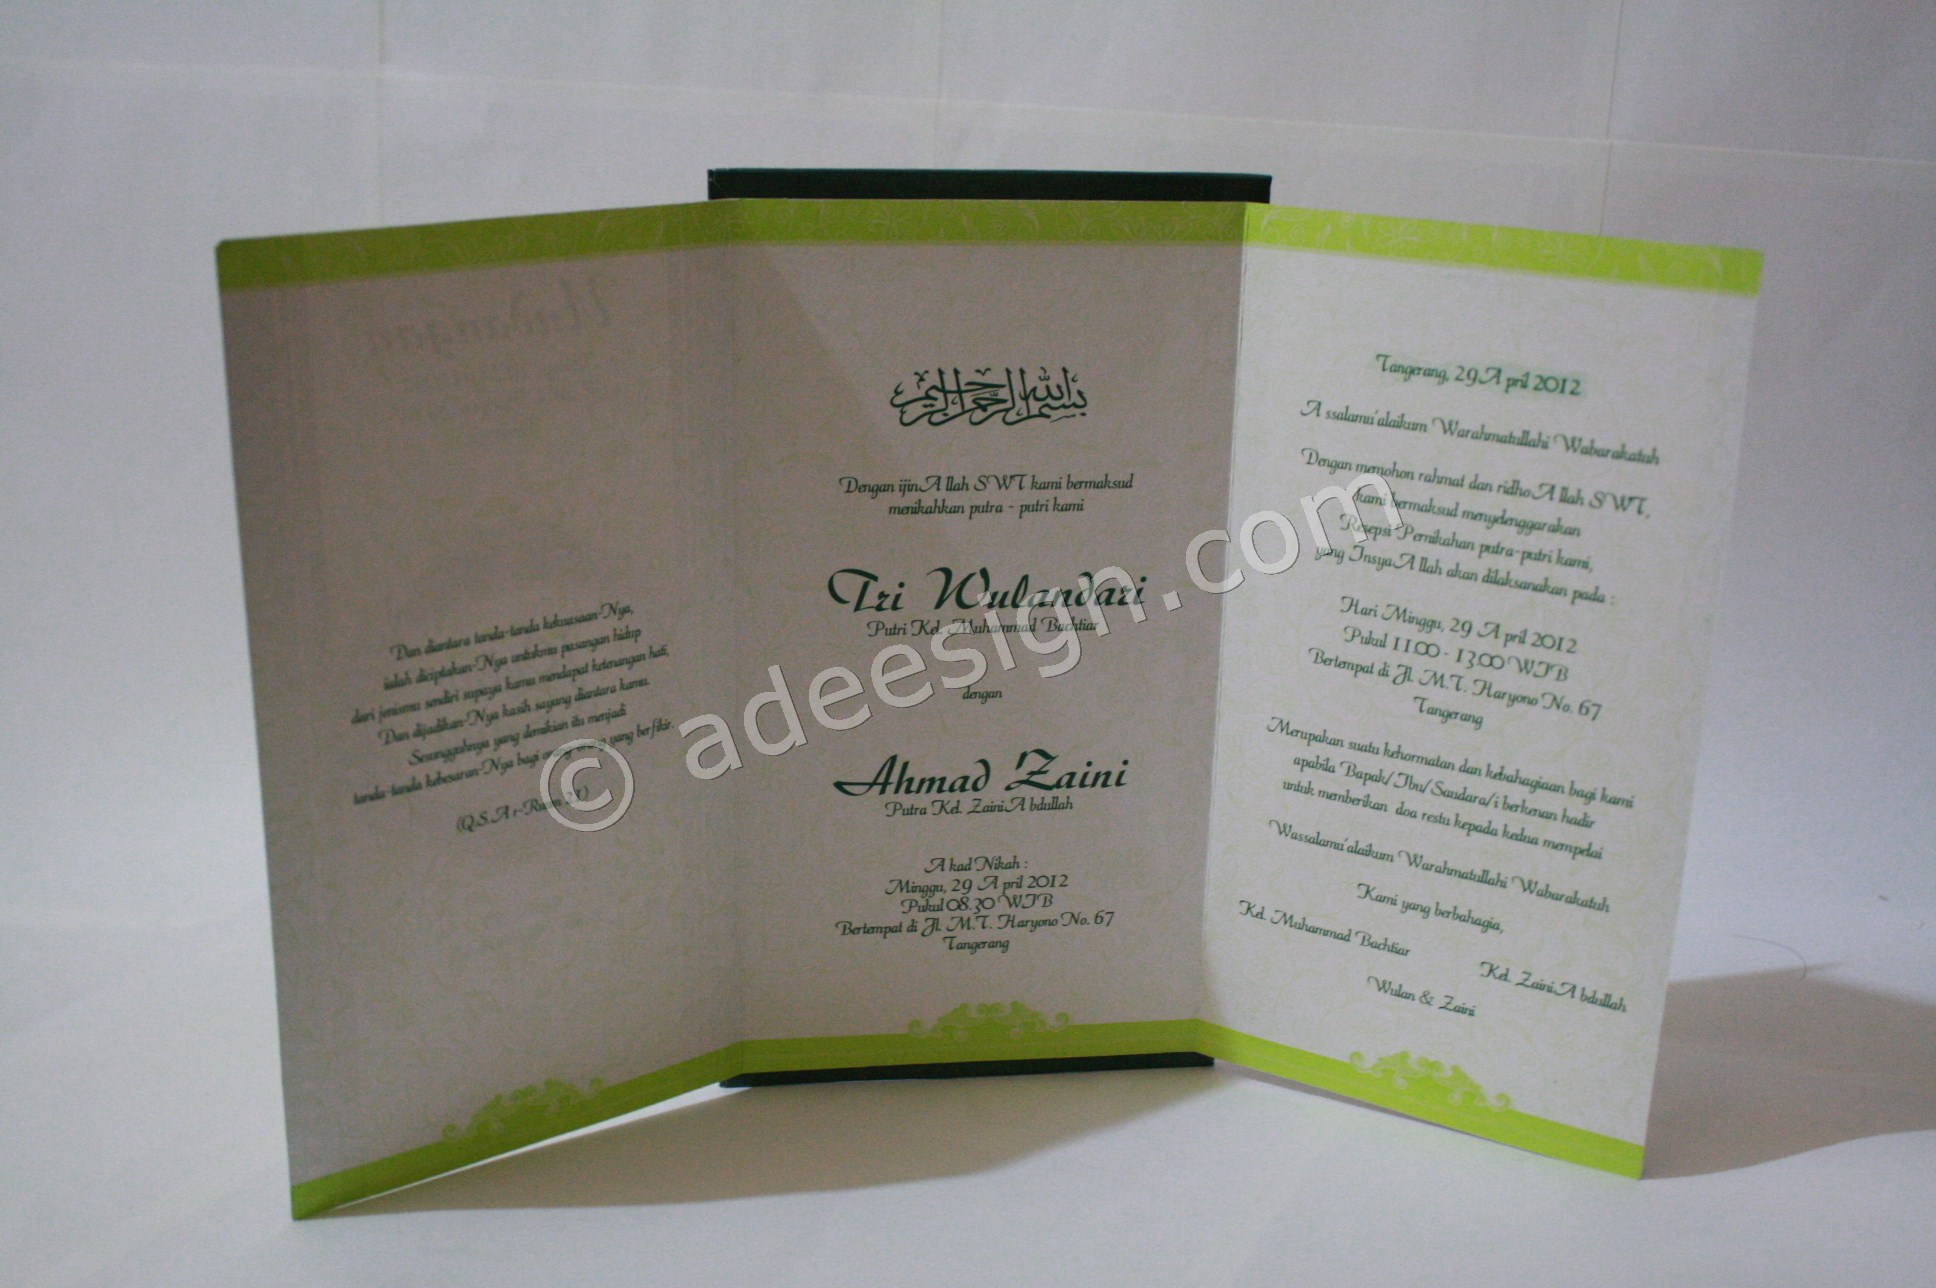 Kartu Undangan Pernikahan Semi Hard Cover Wulan dan Zaini 3 - Percetakan Wedding Invitations Simple dan Elegan di Sawunggaling